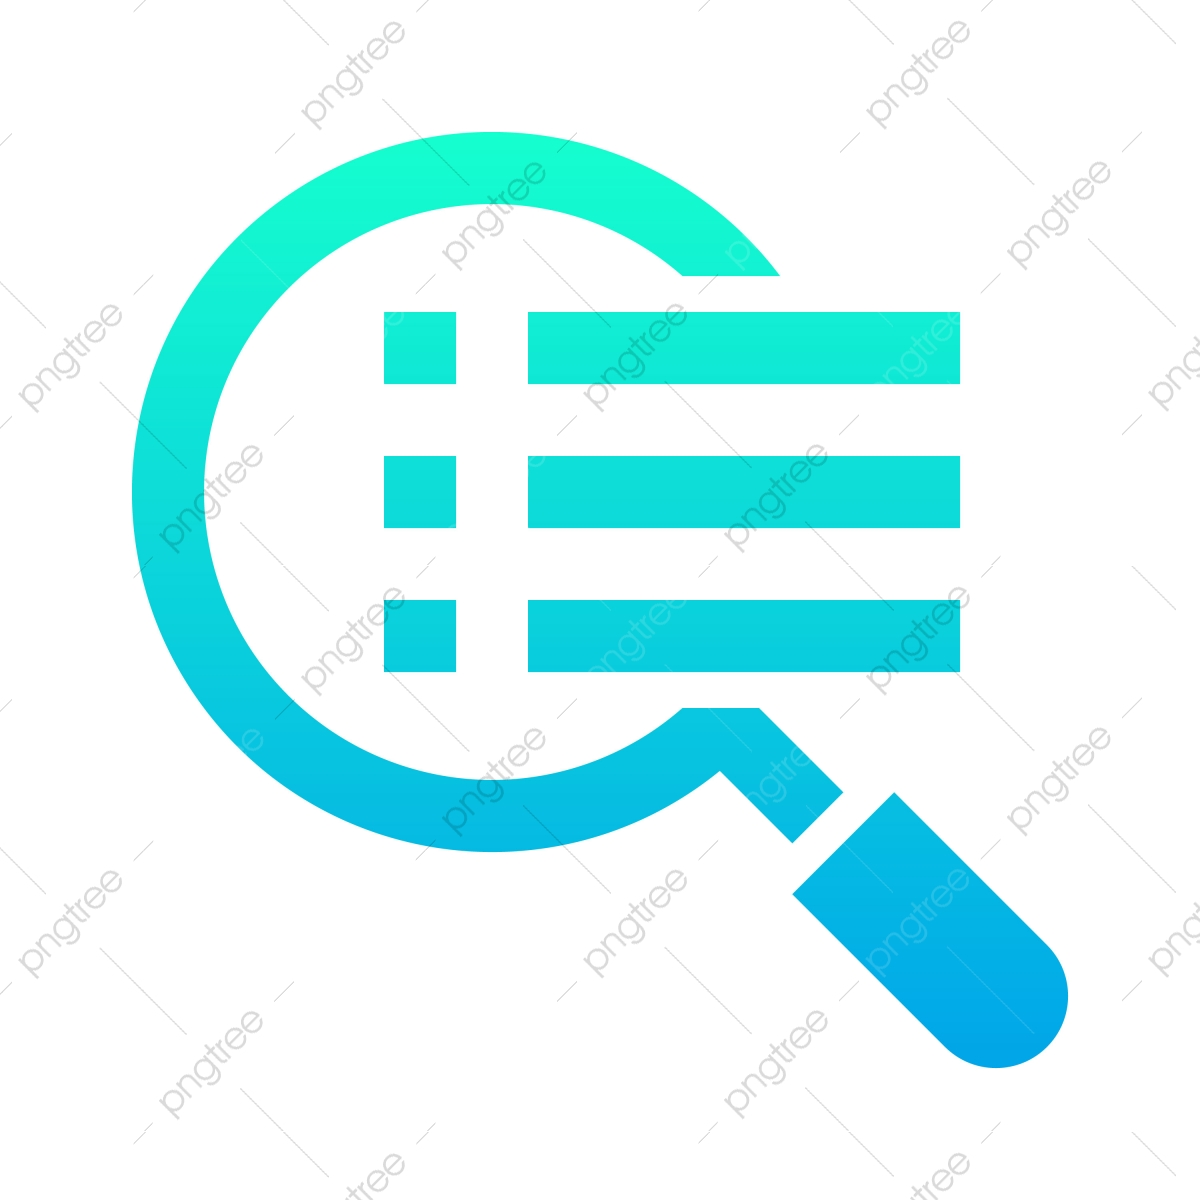 analysis icon png images vector and psd files free download on pngtree https pngtree com freepng analysis icon 5097436 html